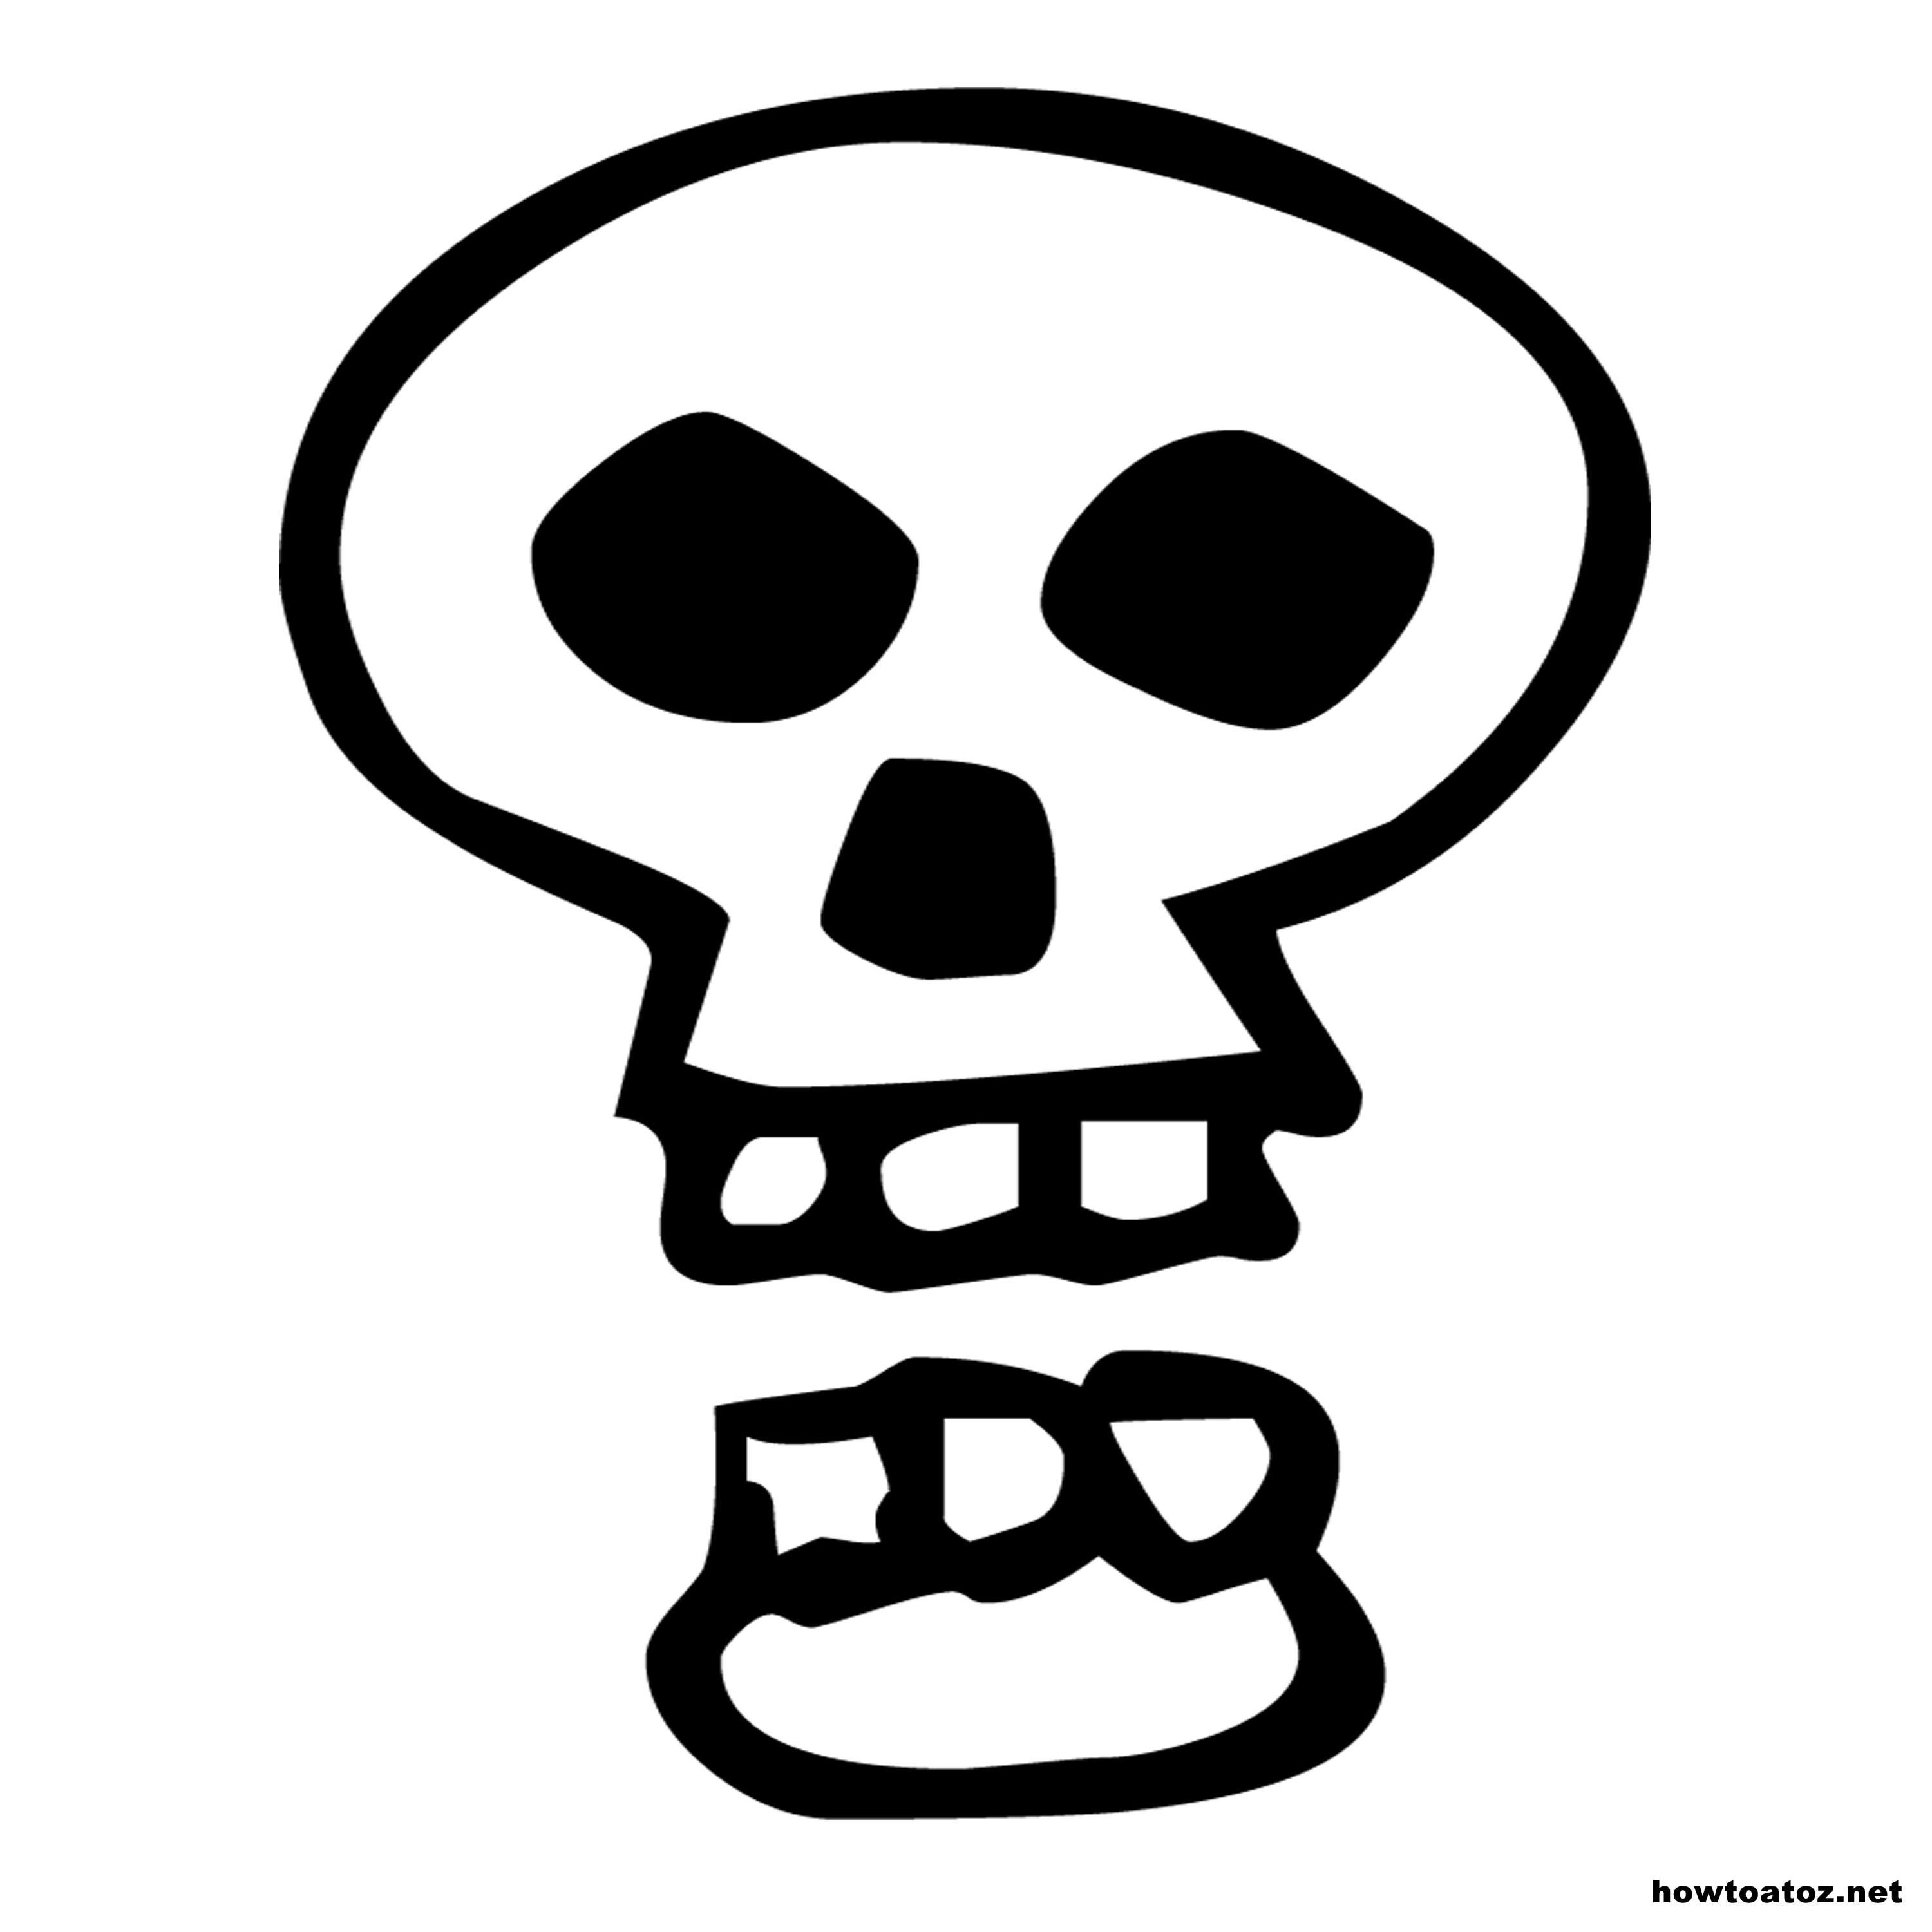 photo relating to Skull Stencils Free Printable identify Halloween Decoration Stencils And Templates - How toward A in the direction of Z